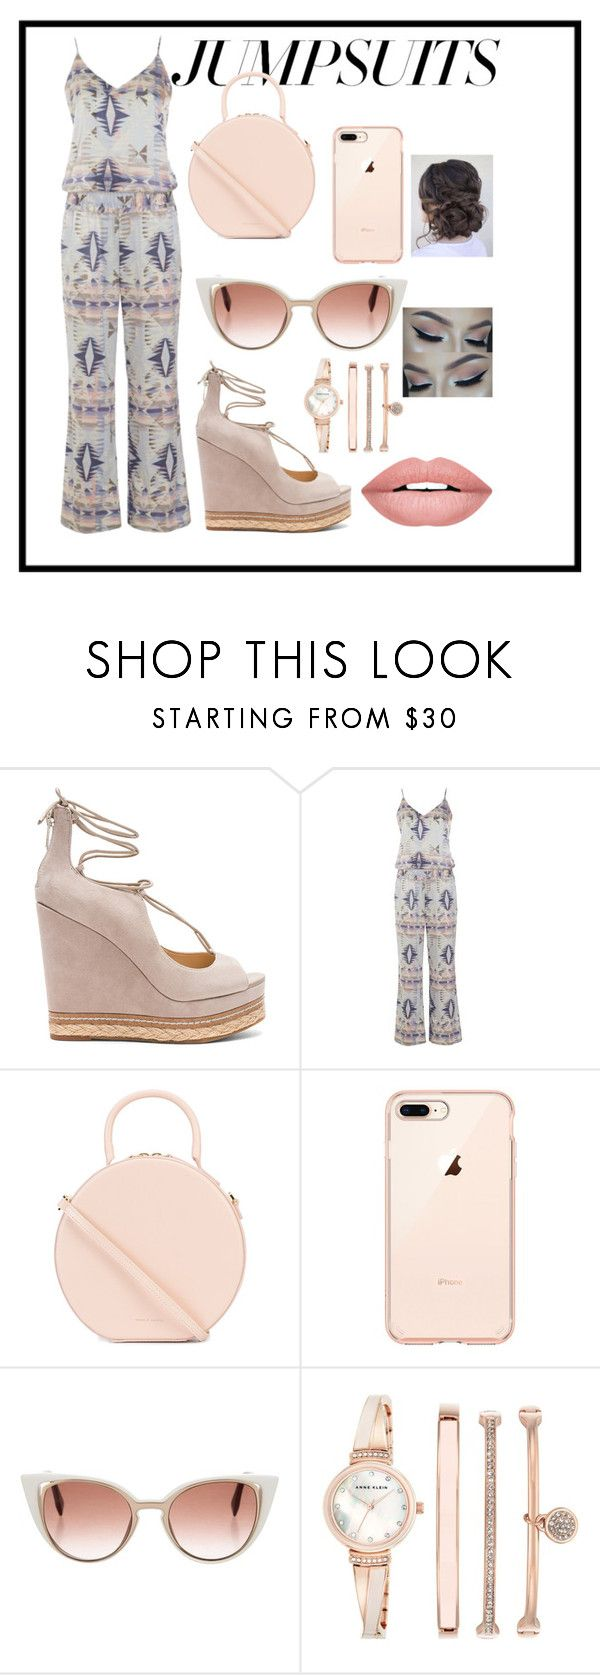 """""""rose gold /// jumpsuits//  please pick me"""" by mollie-spellman ❤ liked on Polyvore featuring Sam Edelman, Mansur Gavriel, Fendi, Anne Klein, Forever 21 and jumpsuits"""